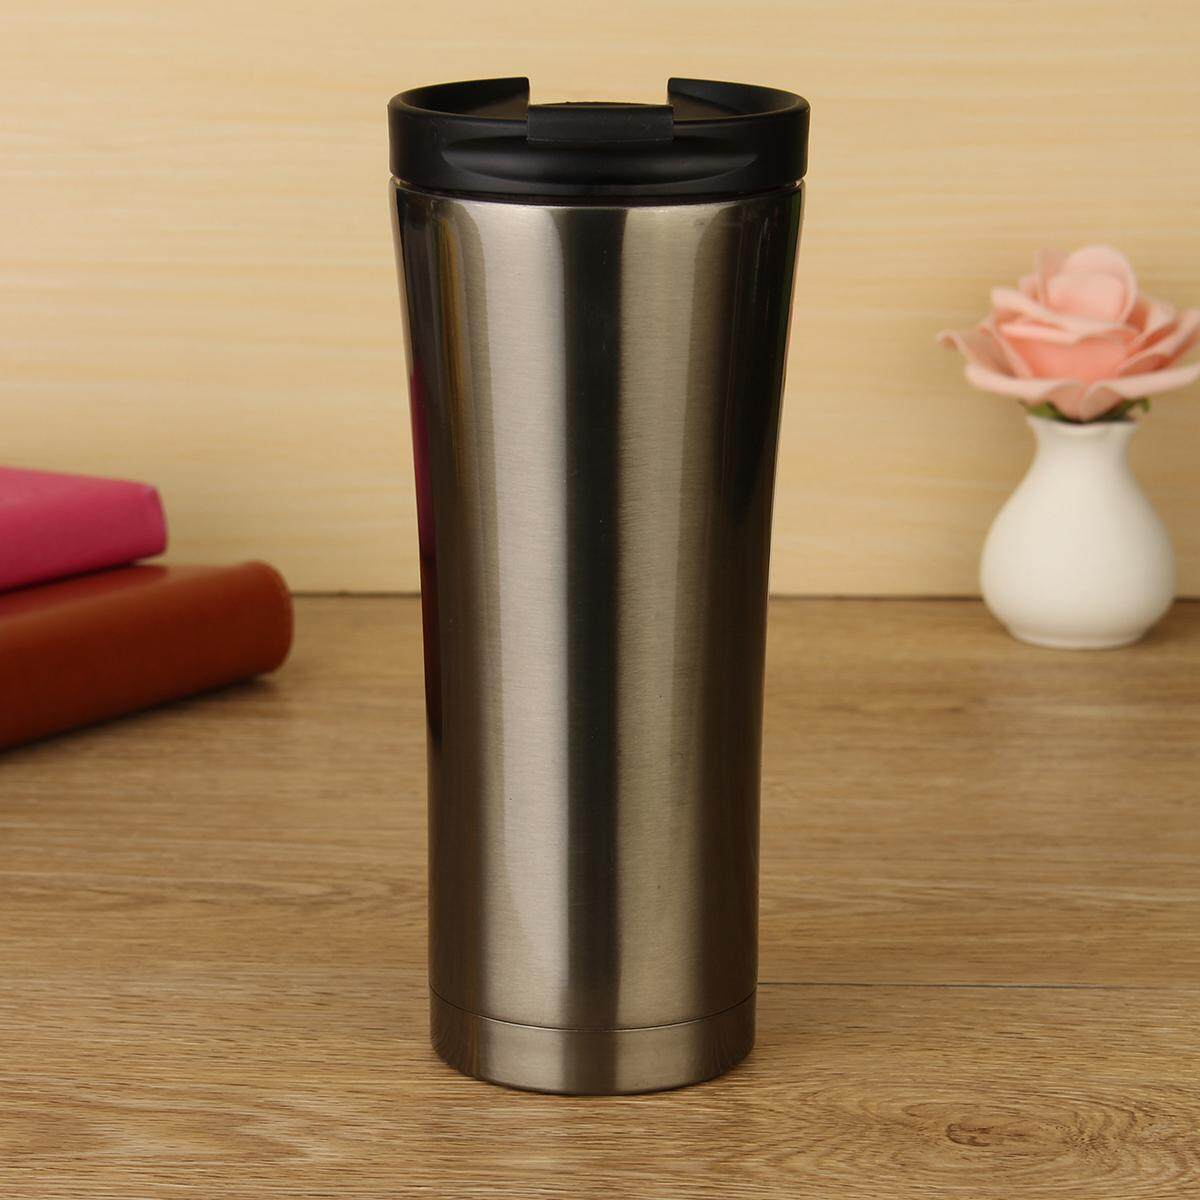 Black Hot Sale Double Wall Stainless Steel Coffee Thermos Cups Mugs Thermal Bottle 500 Ml Thermocup Fashion Tumbler Vacuum Flask - Intl By Five Star Store.